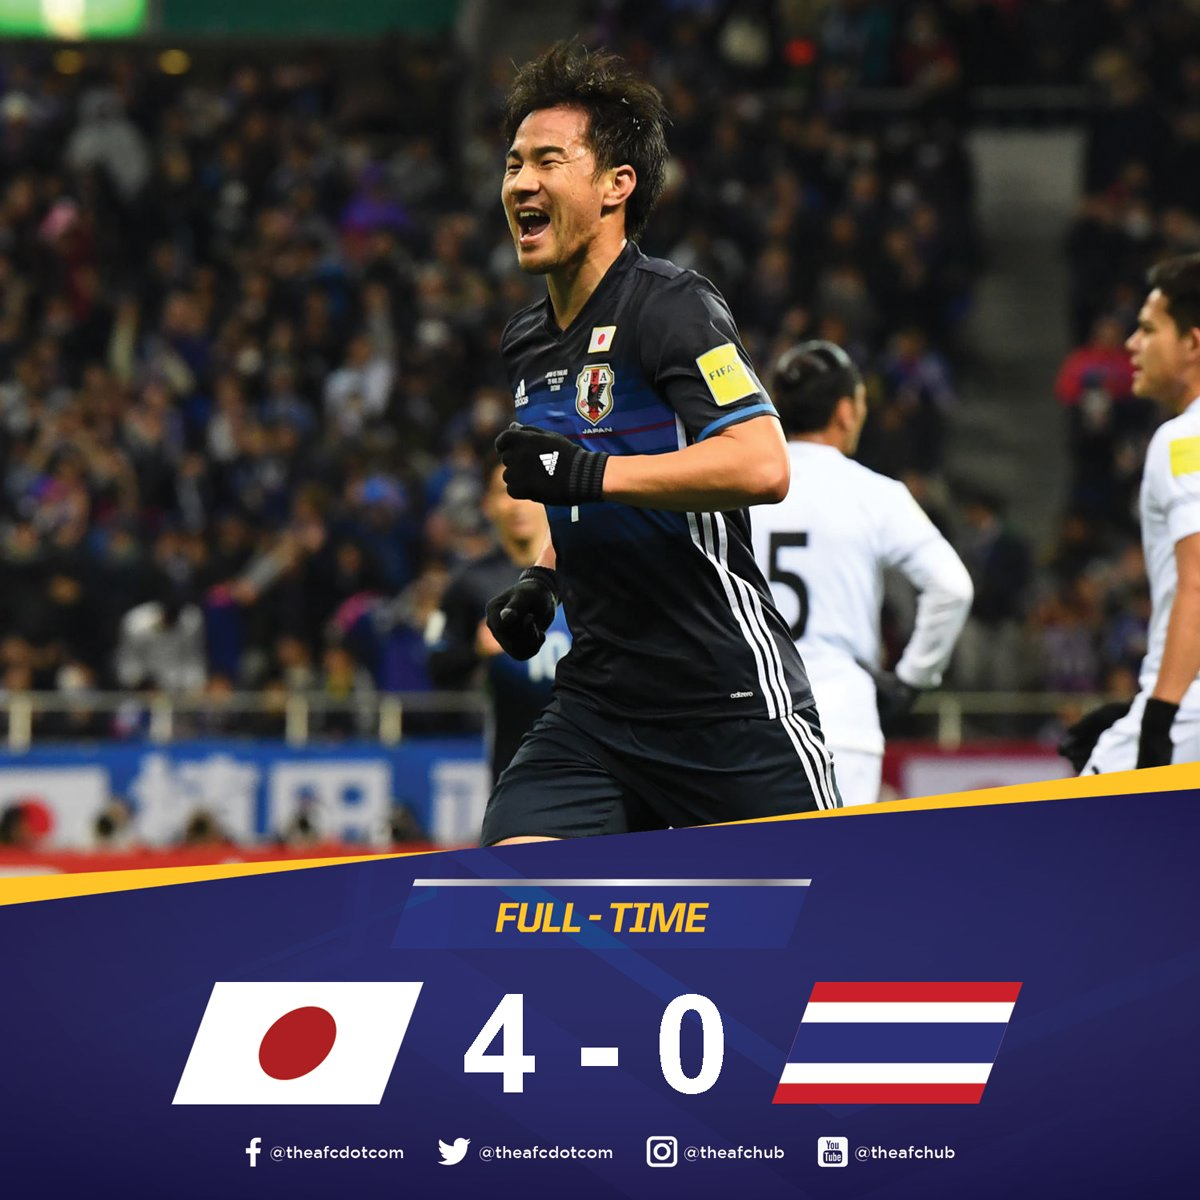 FULL TIME @jfa_samuraiblue 4-0 @FAThailand - A comprehensive win for Japan